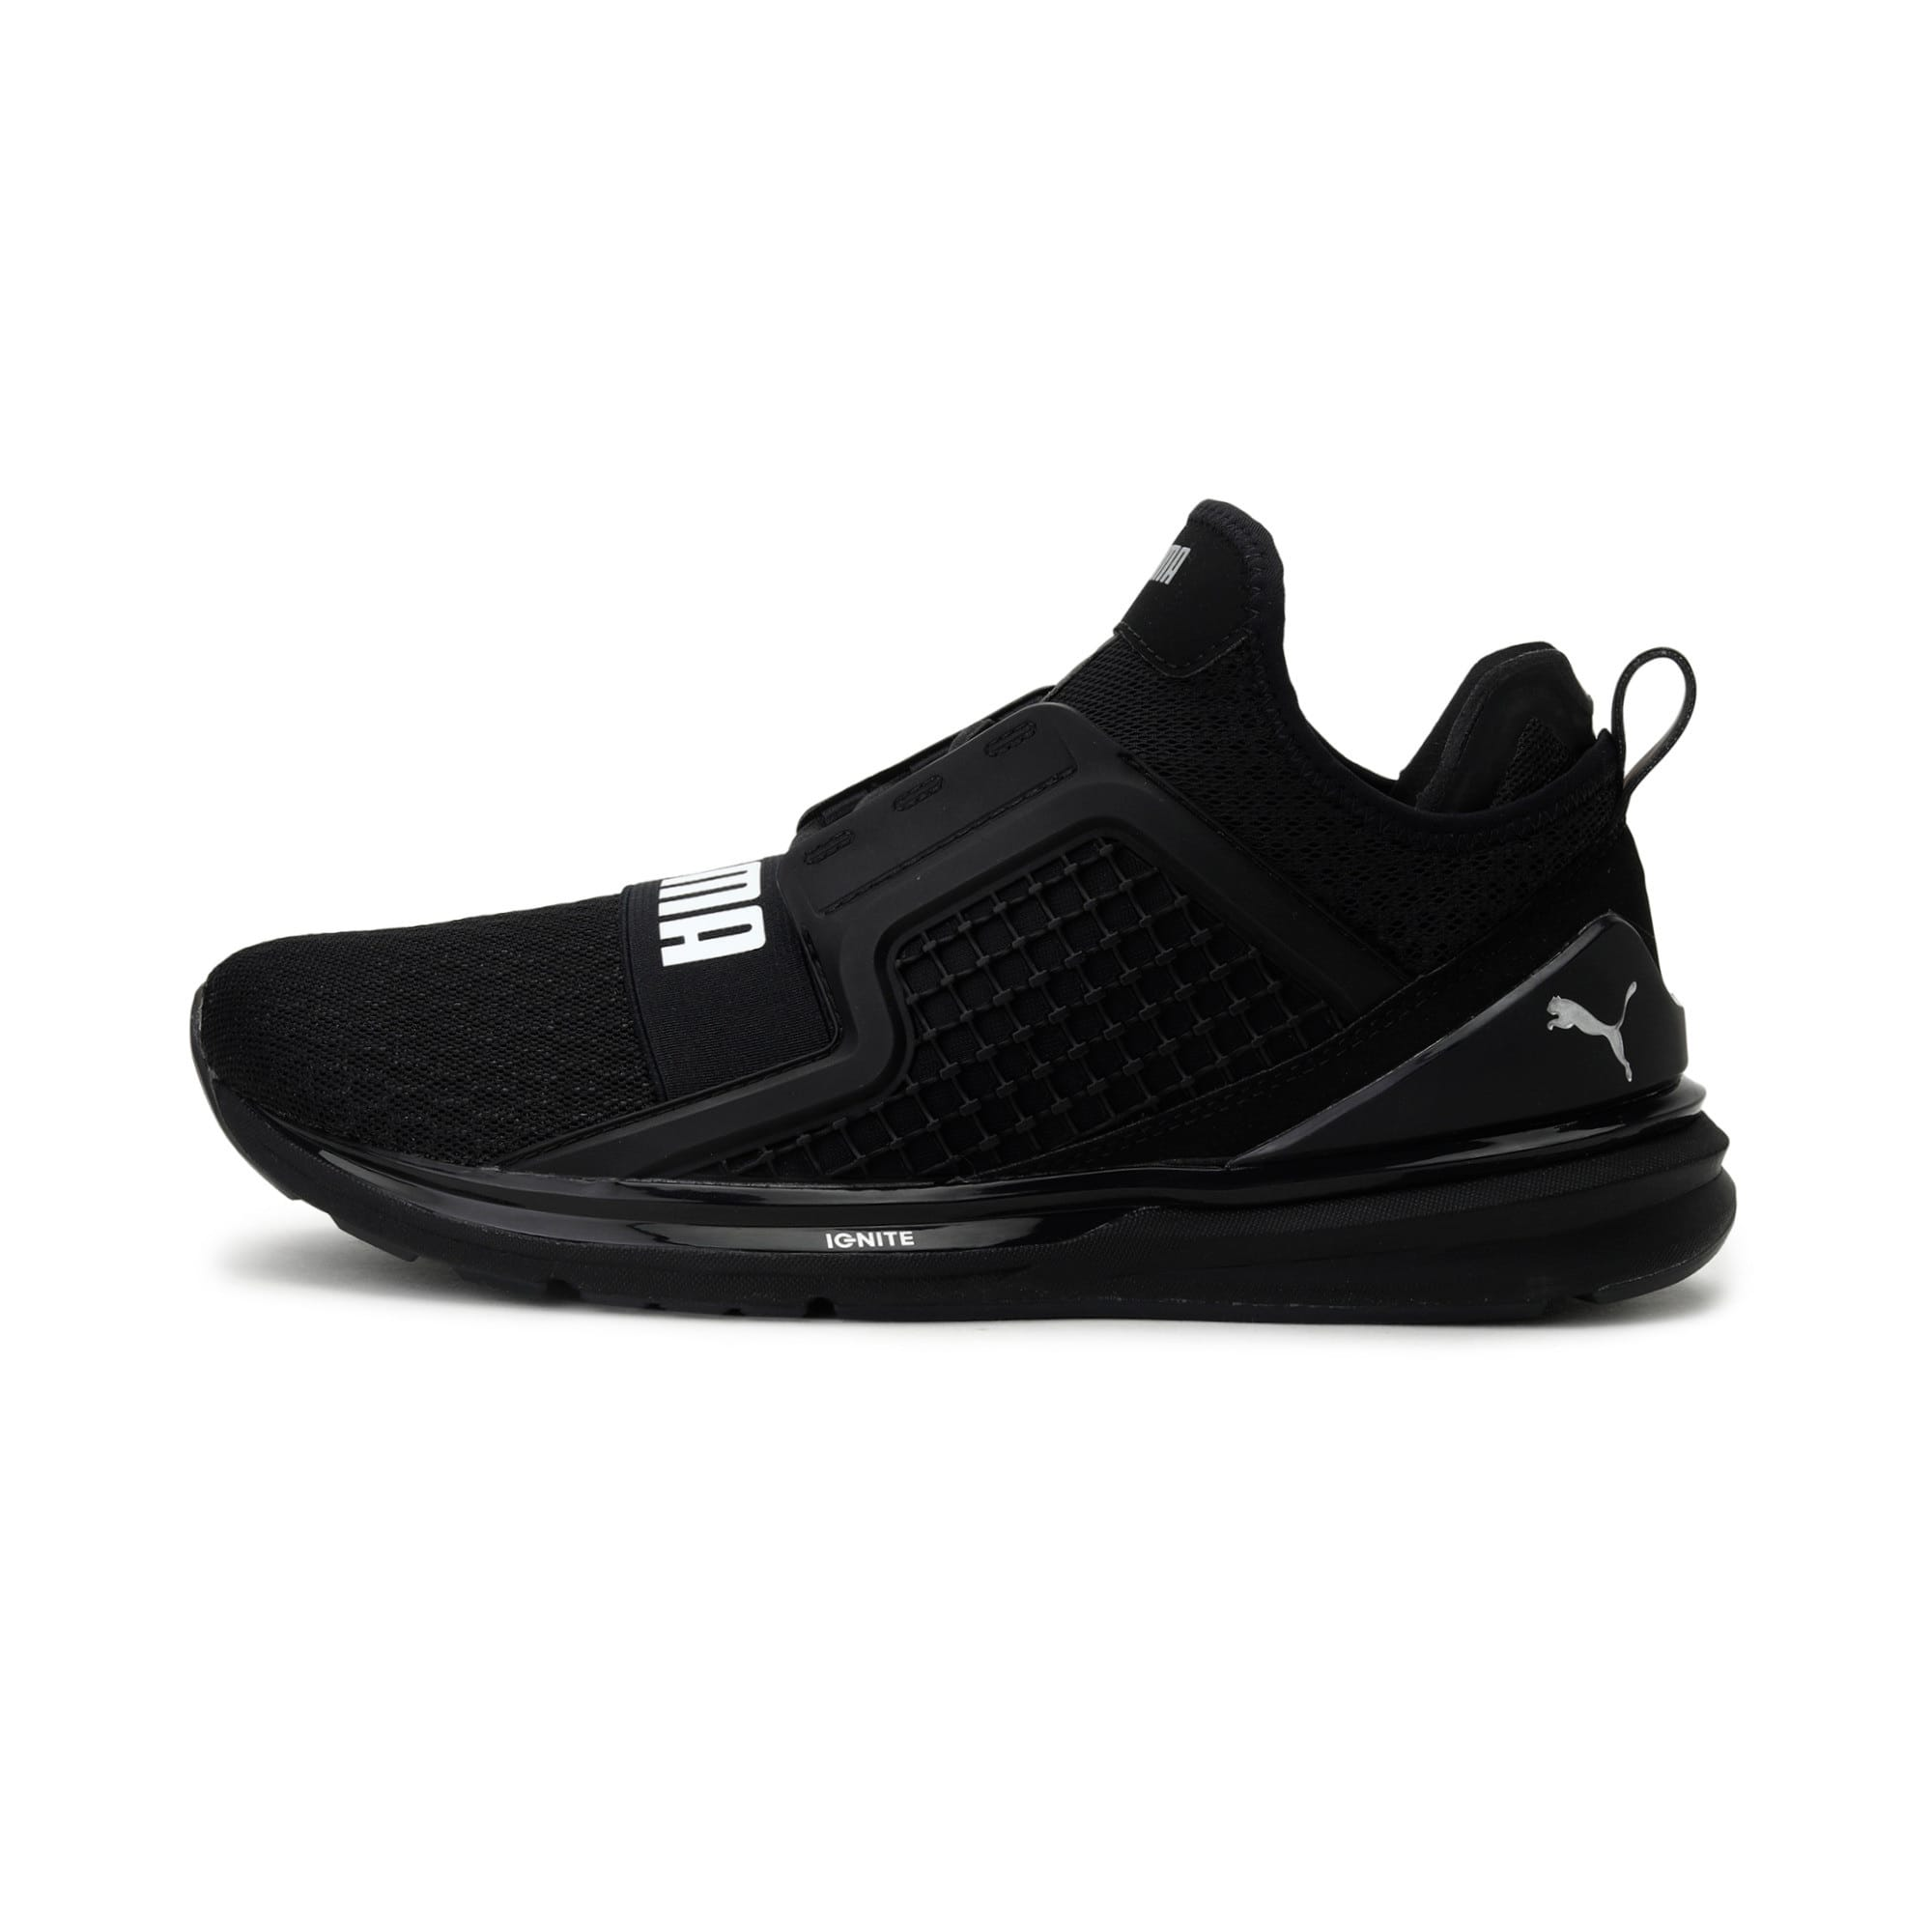 Thumbnail 1 of IGNITE Limitless Men's Running Shoes, Puma Black, medium-IND